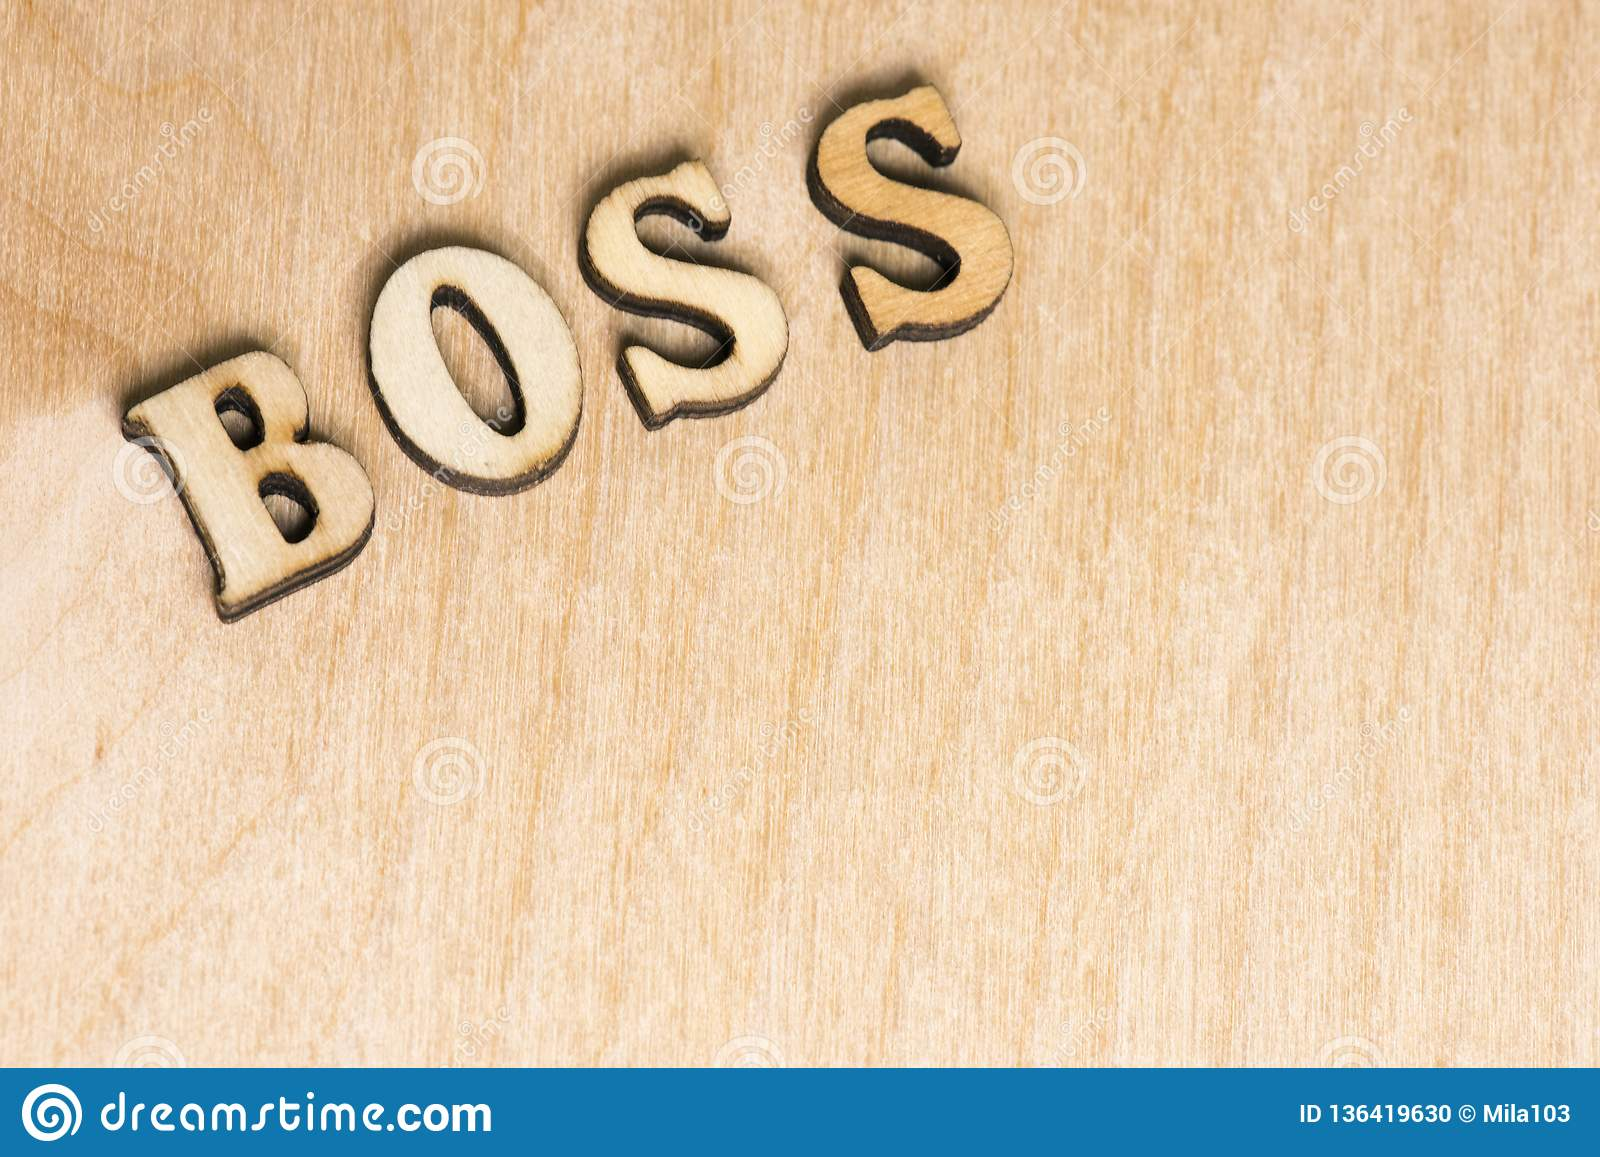 On a wooden background word, the label boss of wooden letters